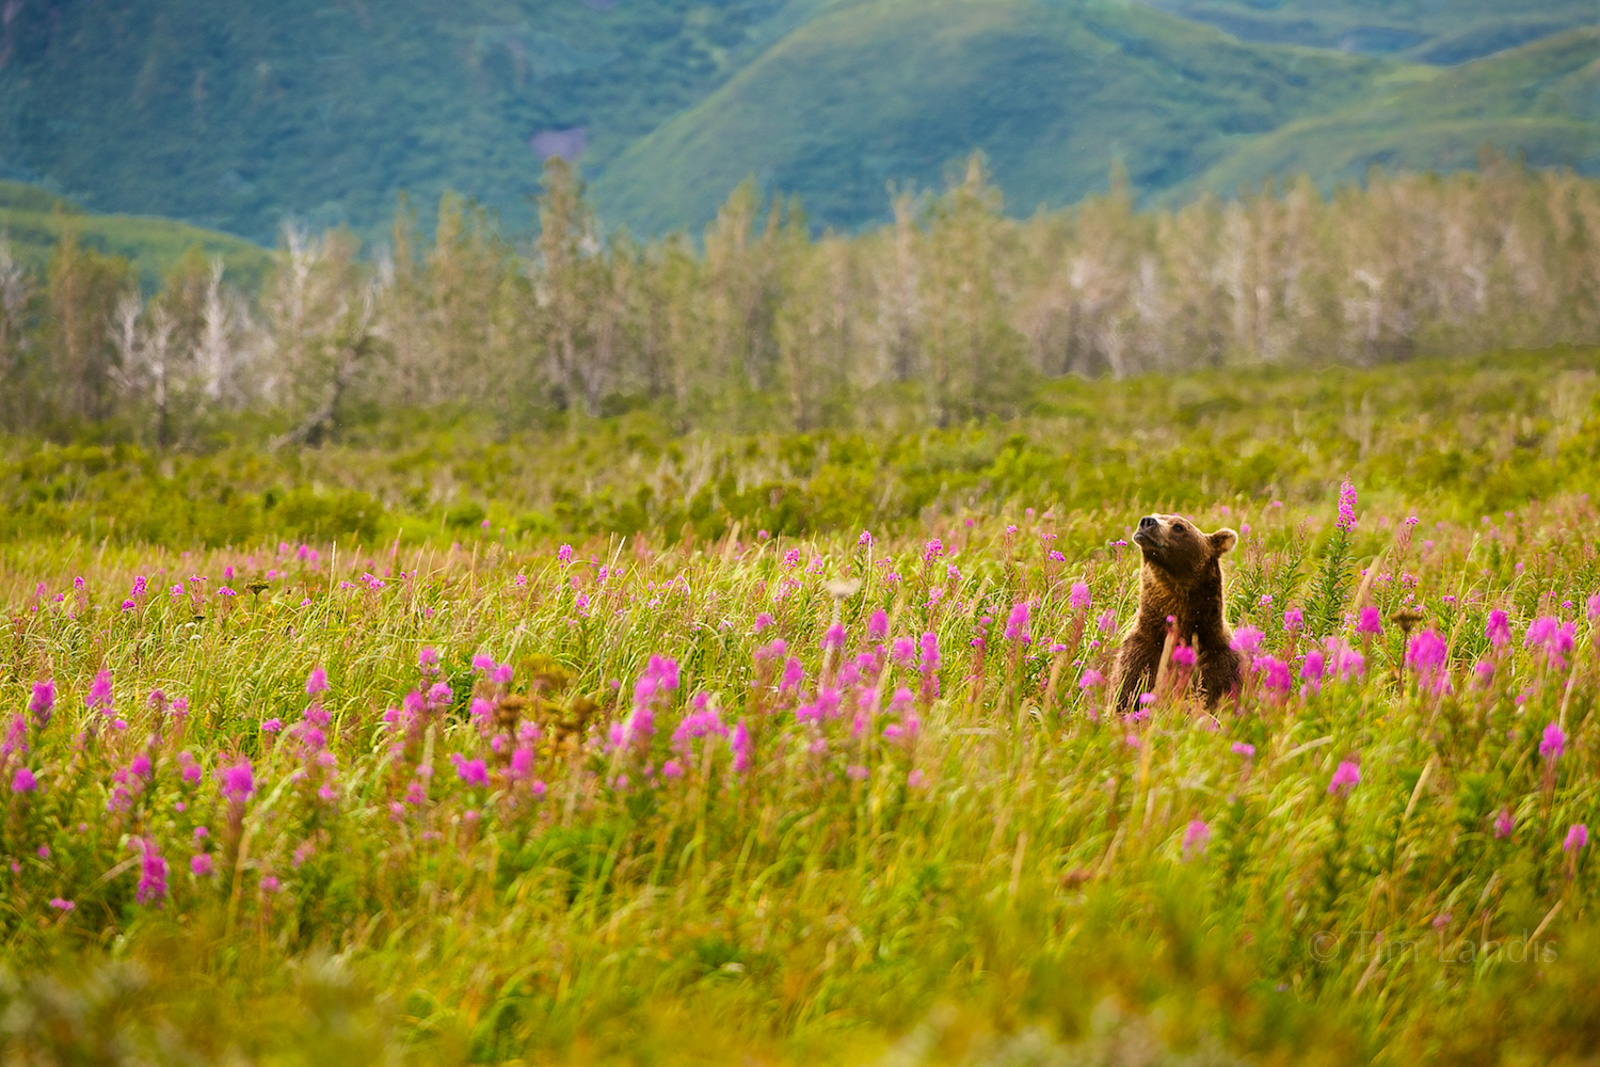 Alaska, bear enjoying the fine day., bear in meadow, bear with flower, grizzly and fireweed, grizzly bear, grizzly with flowers, photo